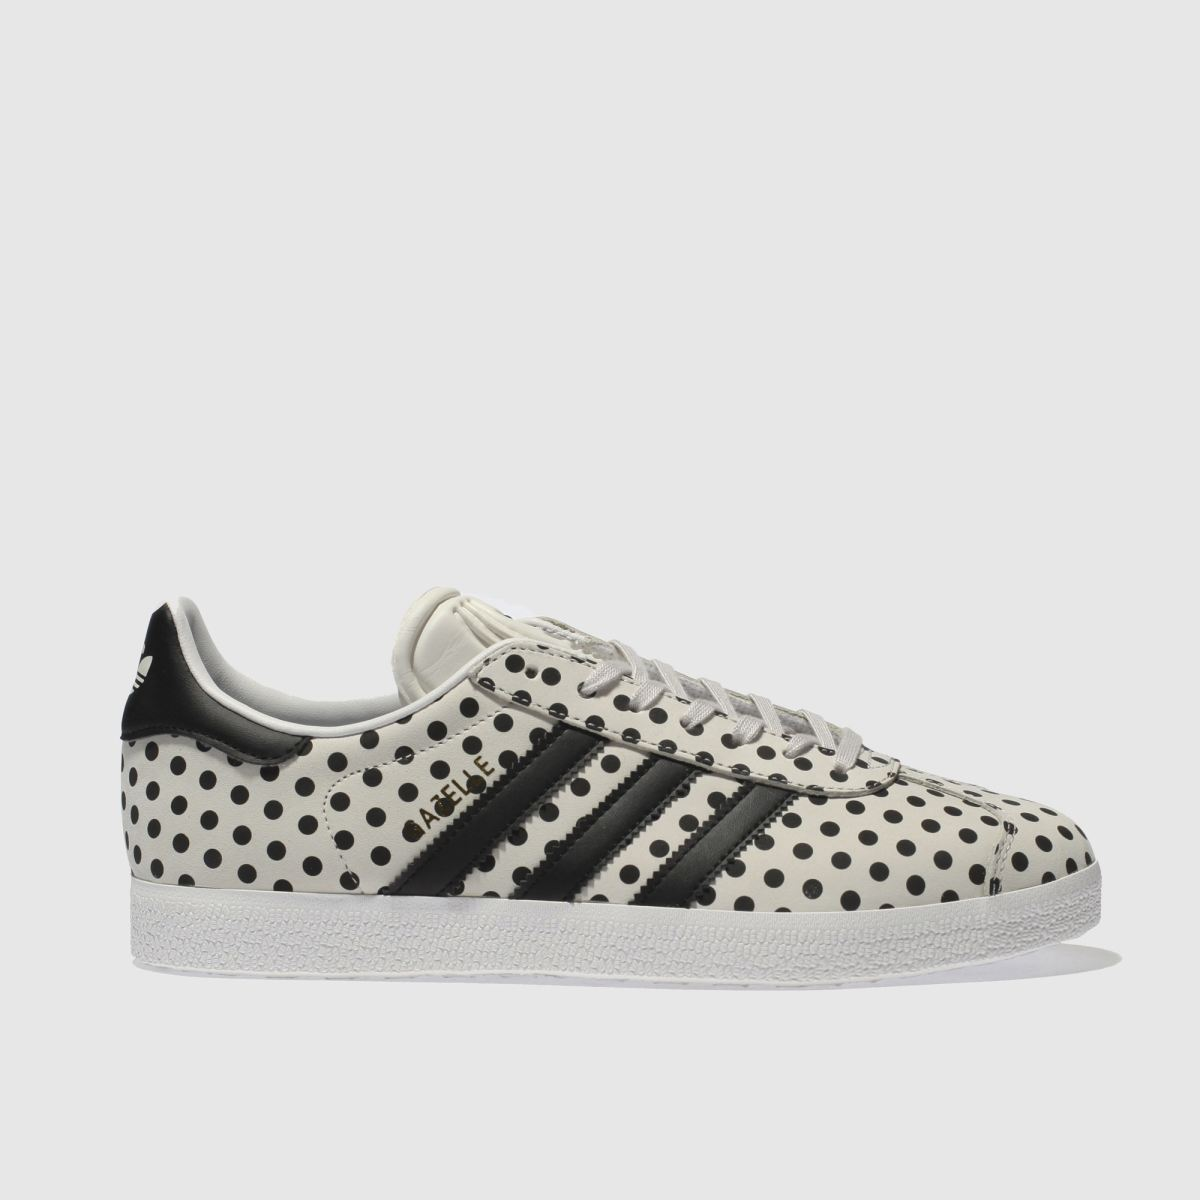 Adidas Light Grey & Black Gazelle Leather Polka Dots Trainers